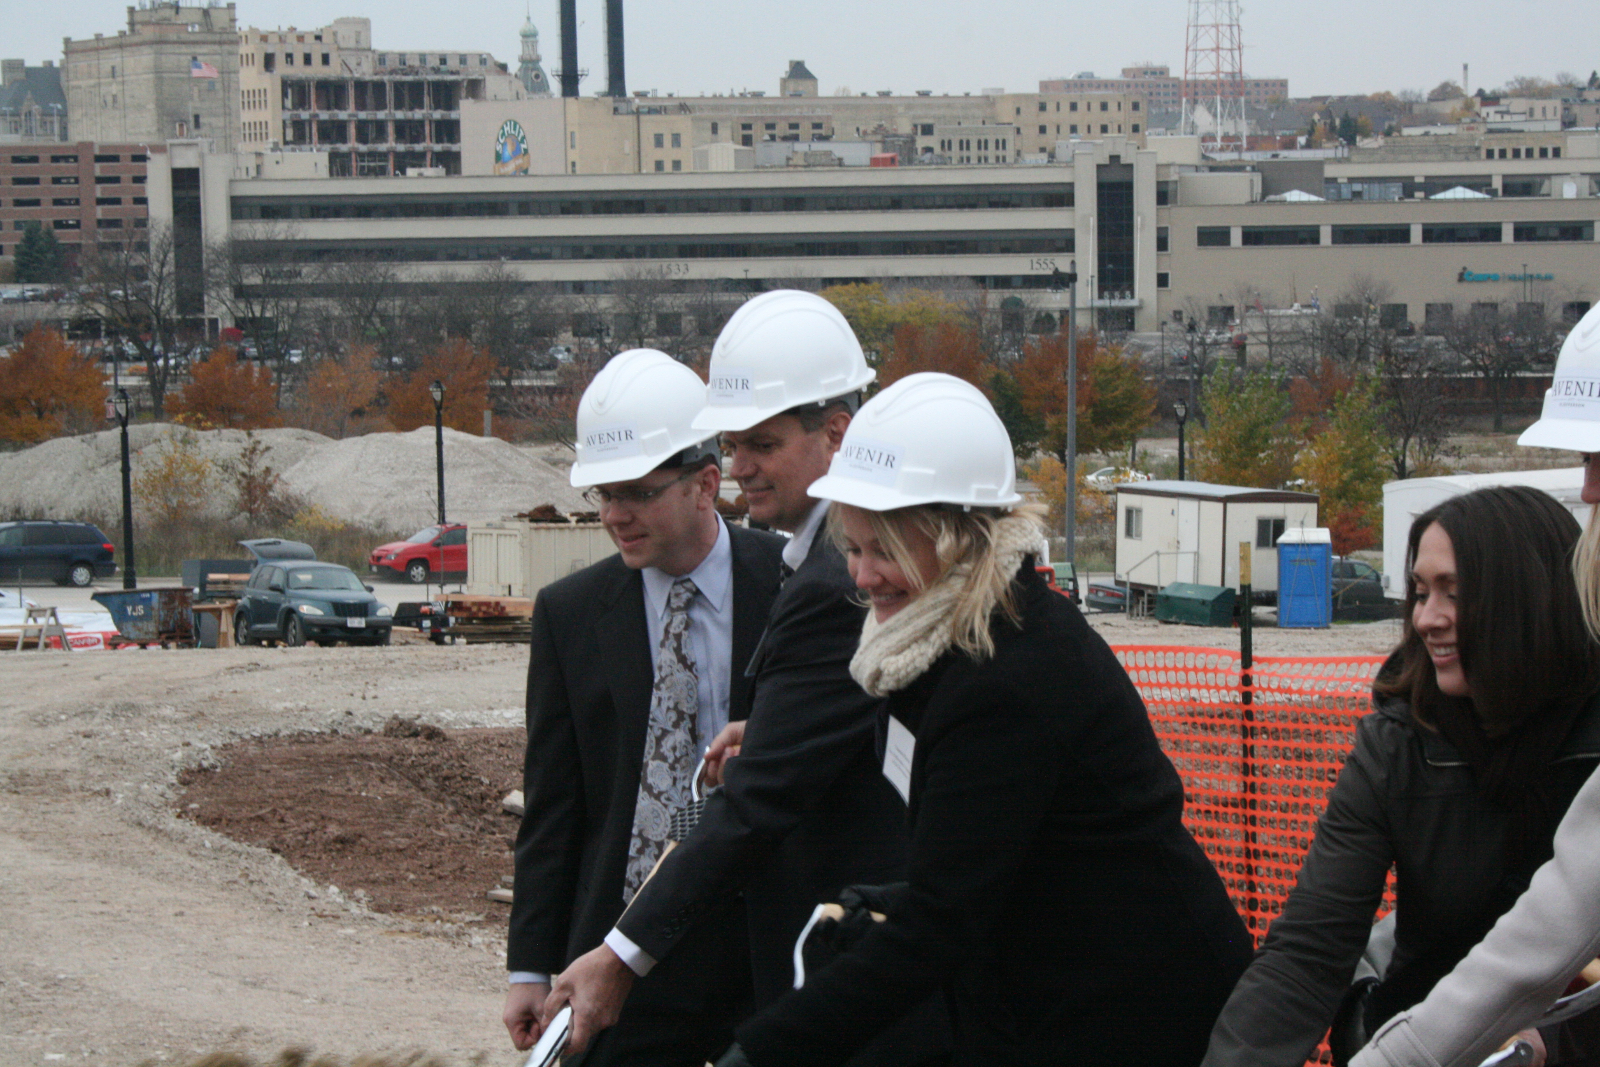 Vanessa Koster, of the Department of City Development, joins in the groundbreaking fun!